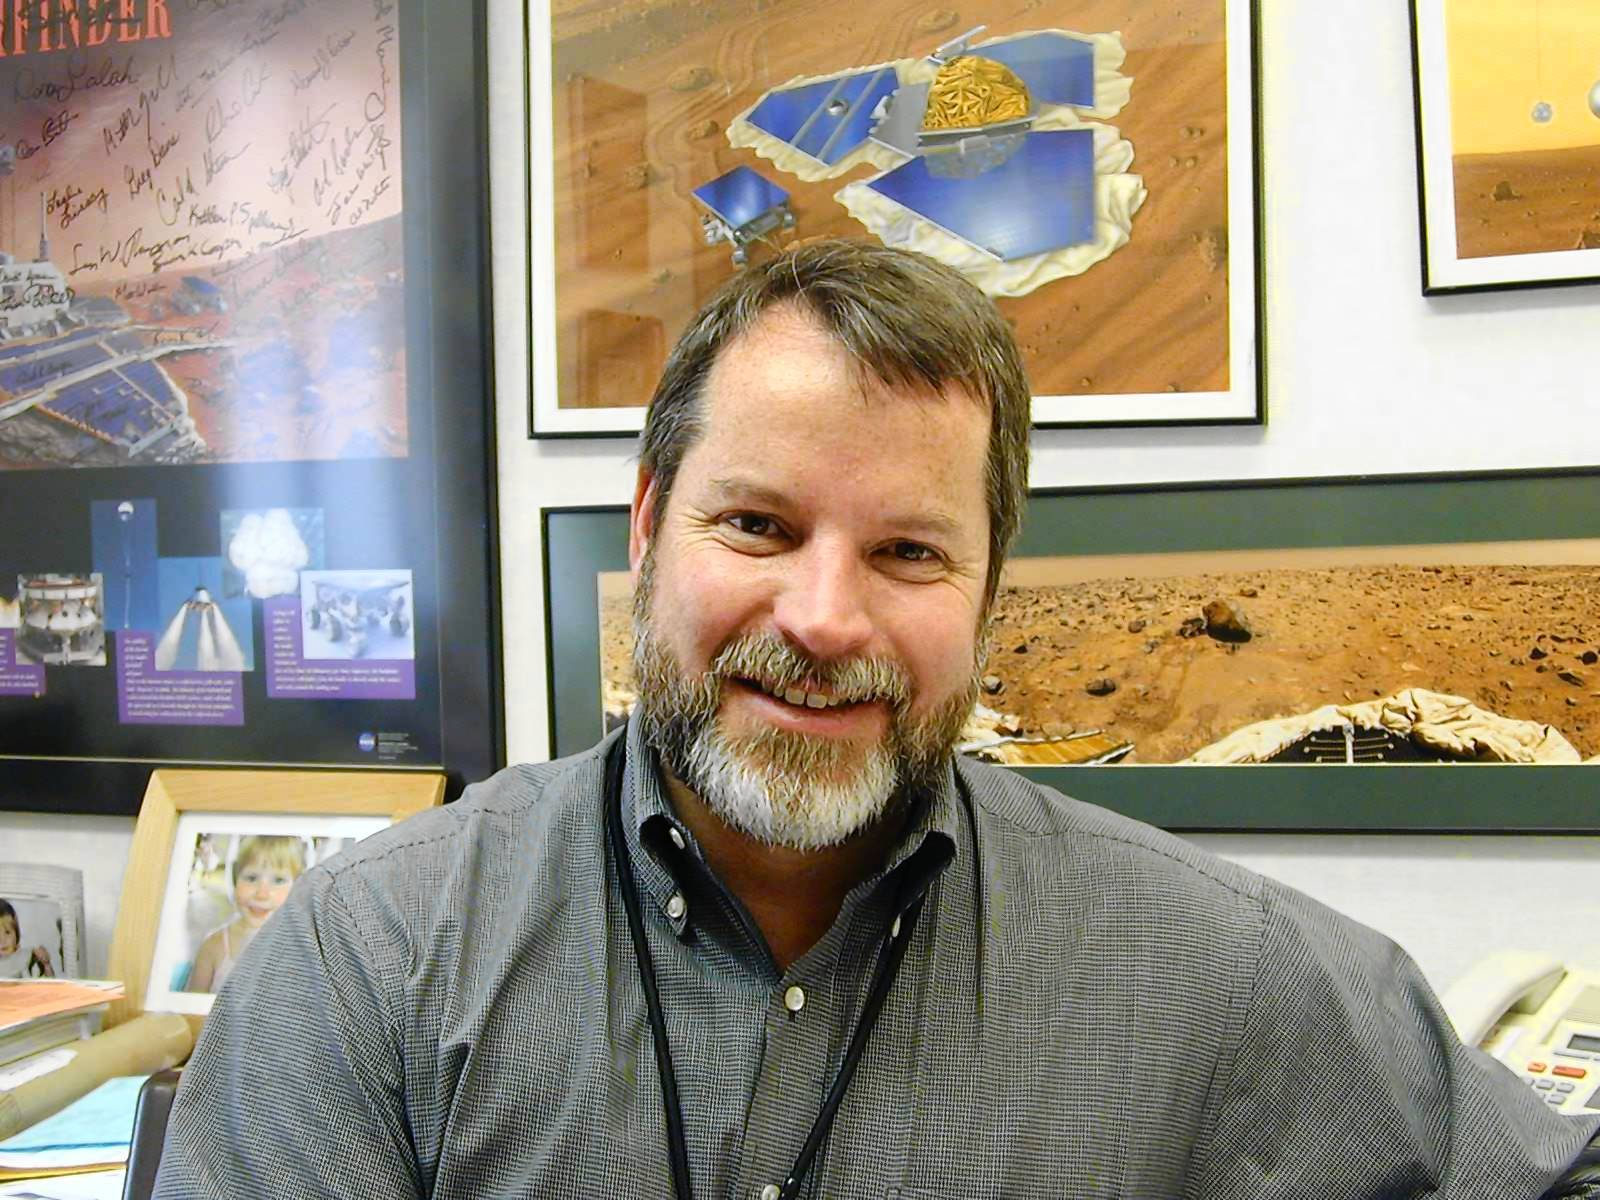 Being a gremlin allows me to soul-search and look at all the things that I missed, said Rob Manning, chief engineer of the Mars rover mission at JPL. His job includes finding challenges for the Curiosity team to solve.